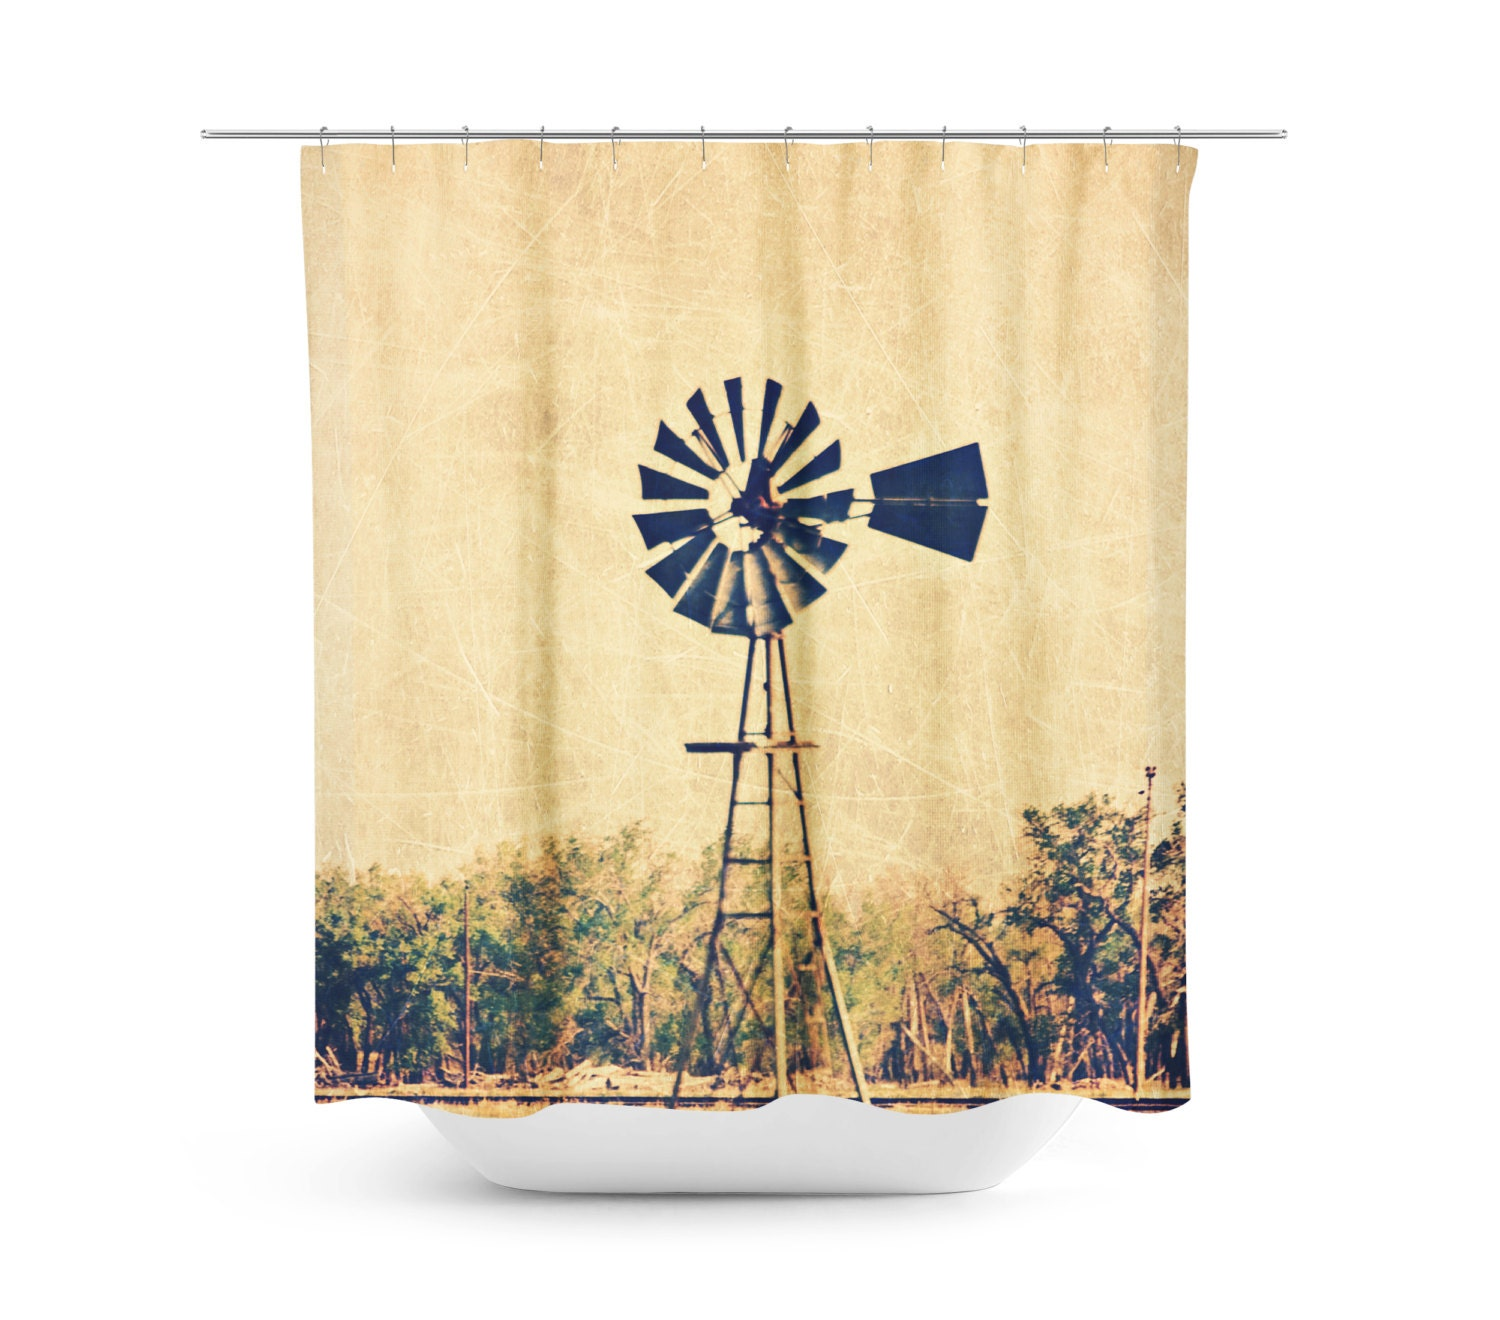 Rustic Shower Curtain Windmill Photography Country